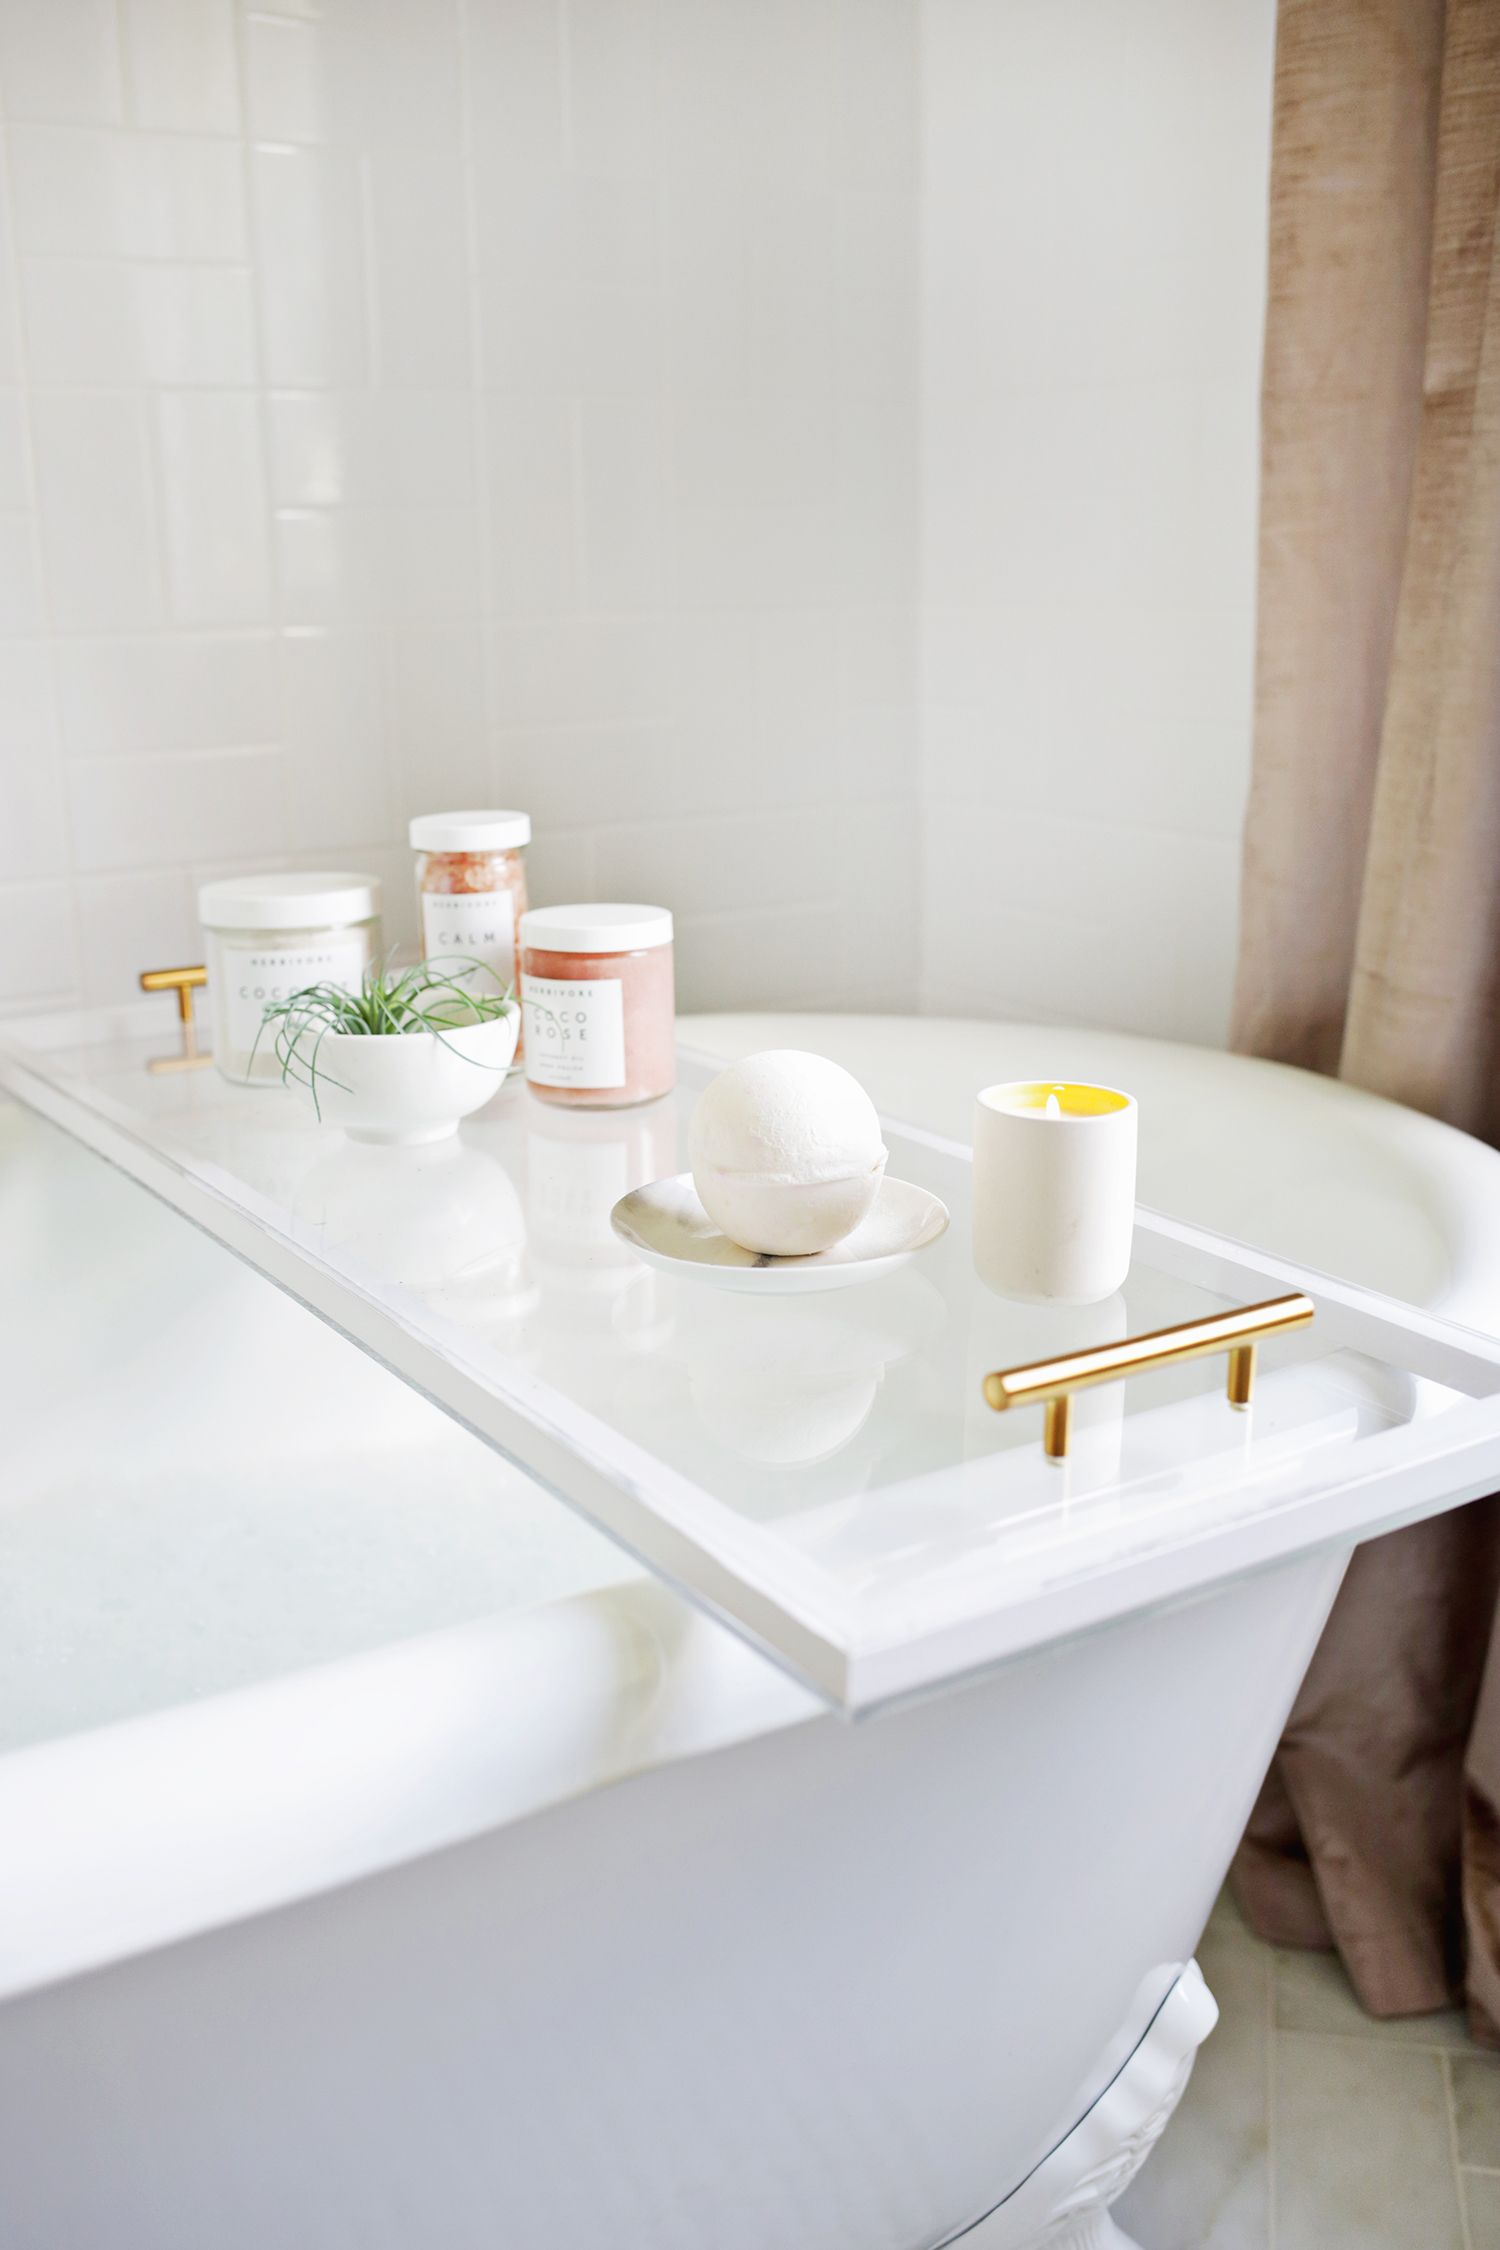 DIY: lucite bathtub caddy | DIY Things | Pinterest | Bathtub caddy ...